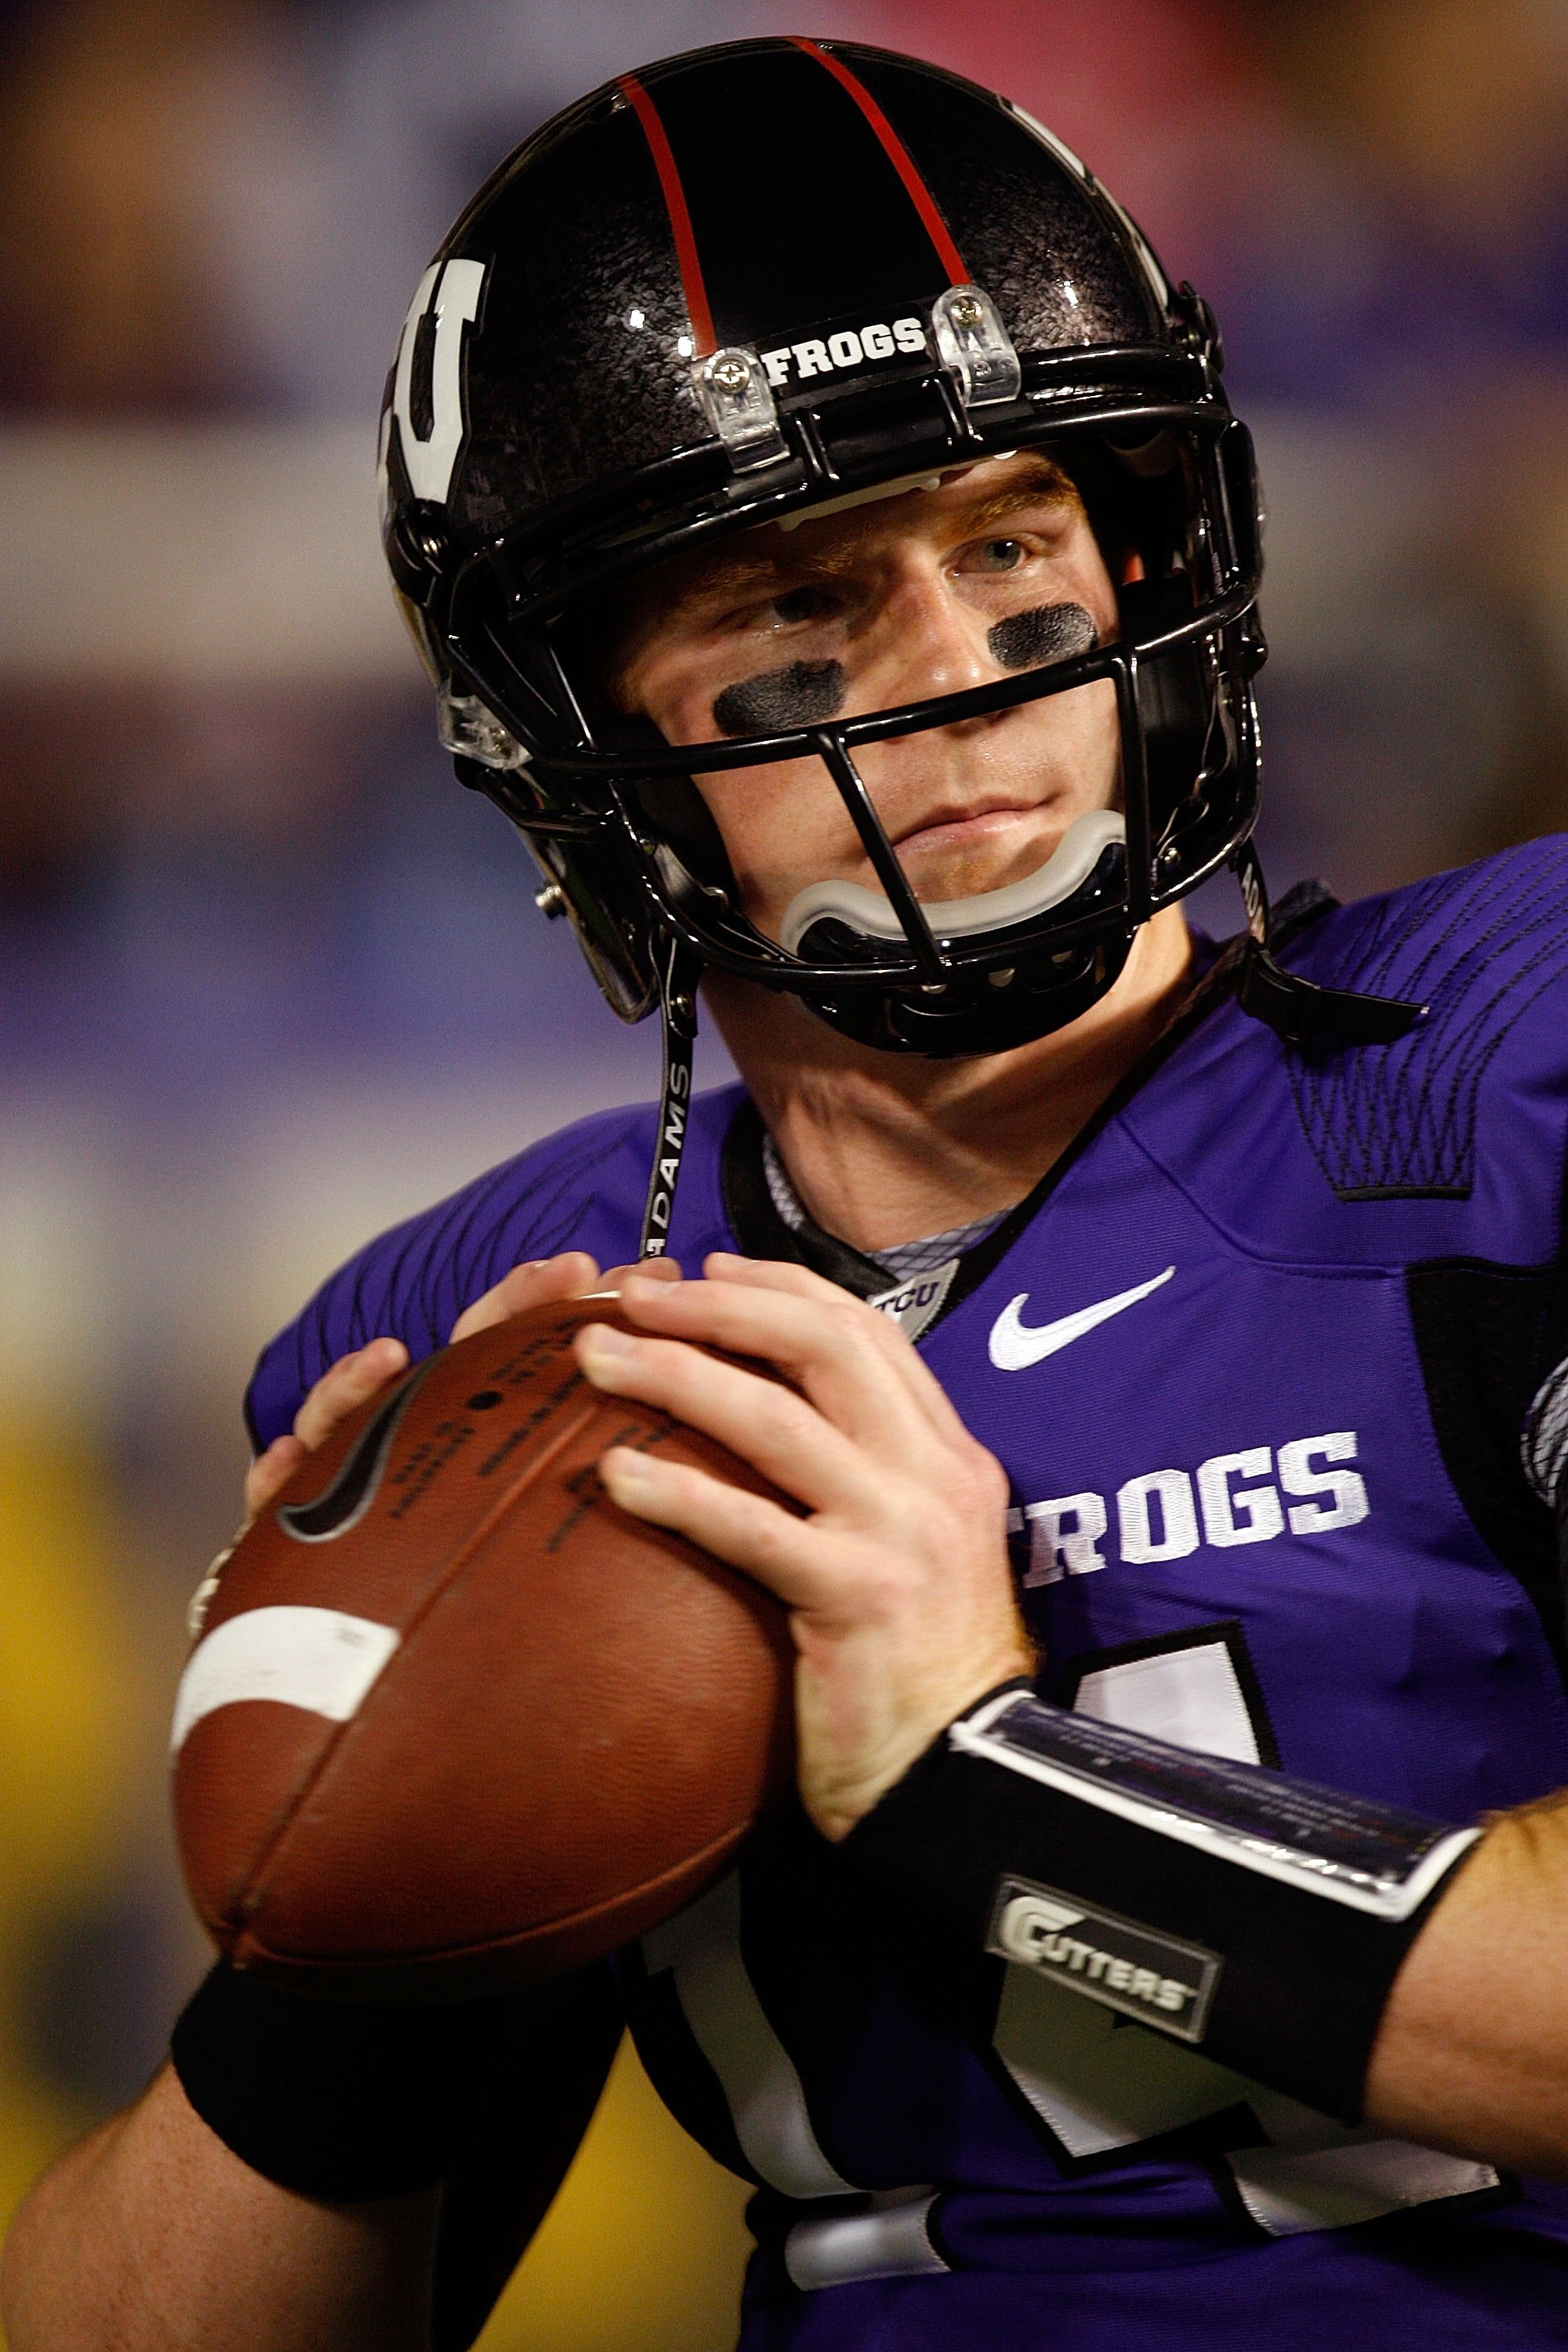 FORT WORTH, TX - NOVEMBER 14:  Quarterback Andy Dalton #14 of the TCU Horned Frogs at Amon G. Carter Stadium on November 14, 2009 in Fort Worth, Texas.  (Photo by Ronald Martinez/Getty Images)